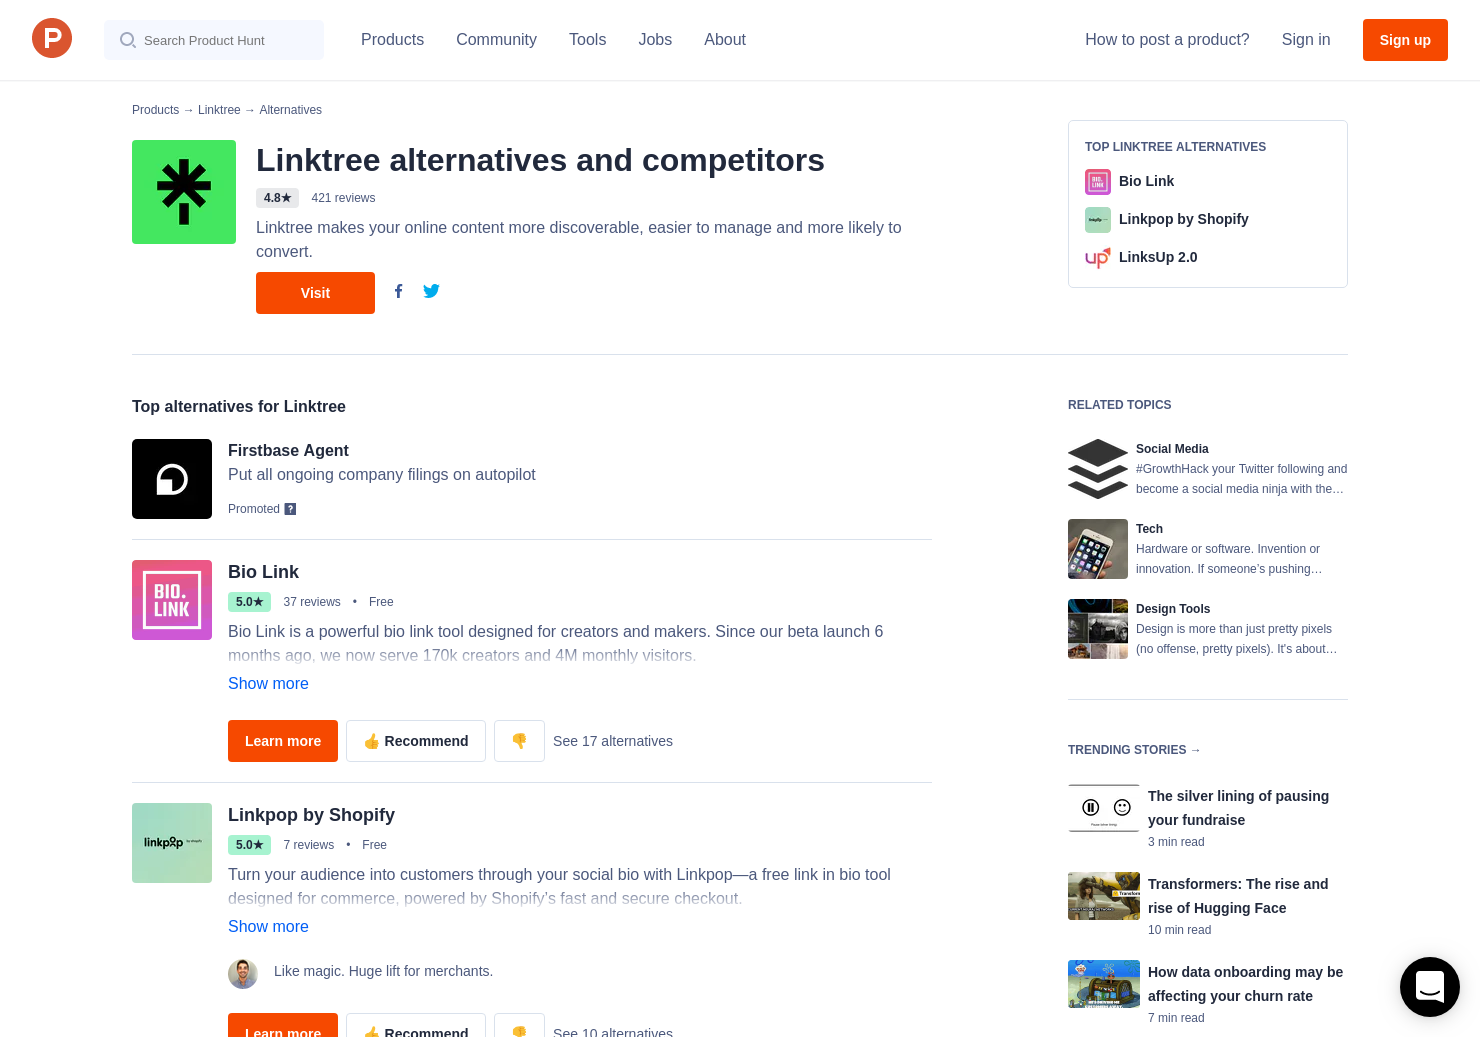 18 Alternatives to Linktree | Product Hunt